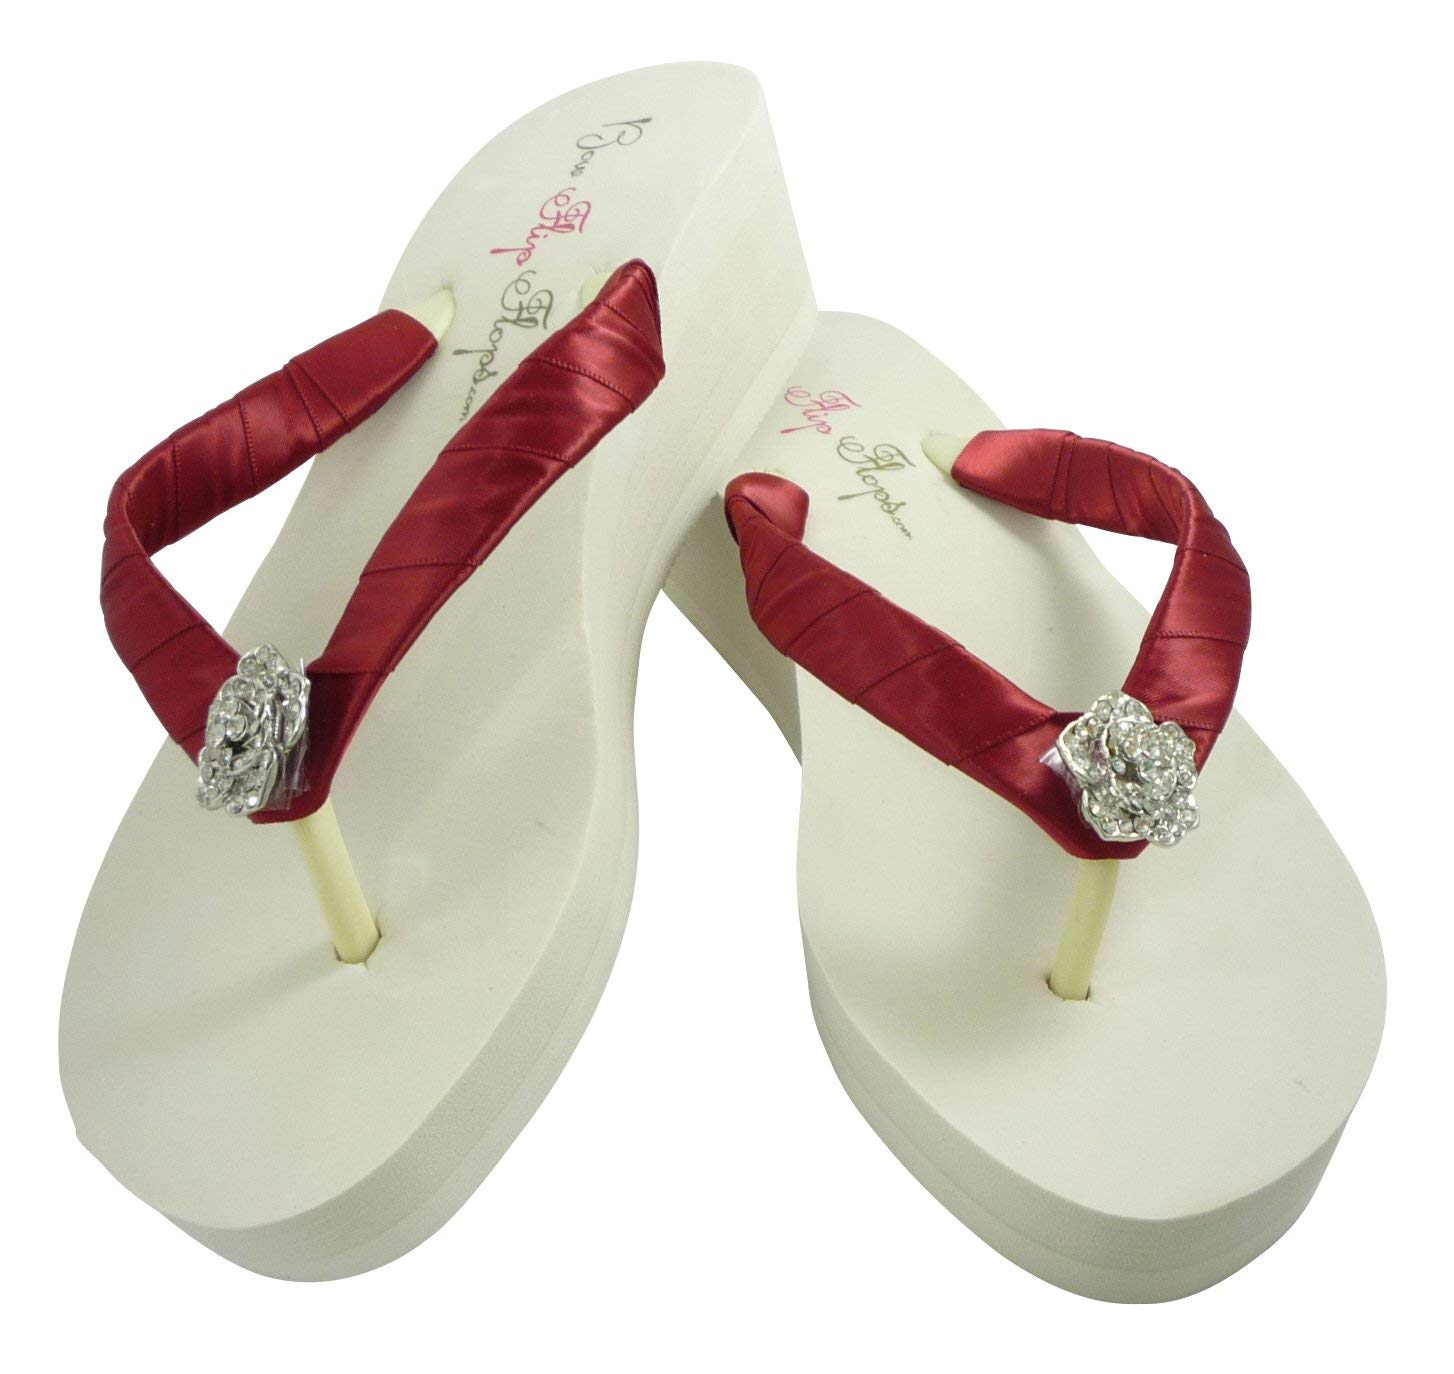 7061a0b2eb3875 Get Quotations · Scarlet Red Rose Flip Flops - Bridal or Bridesmaid Sandals